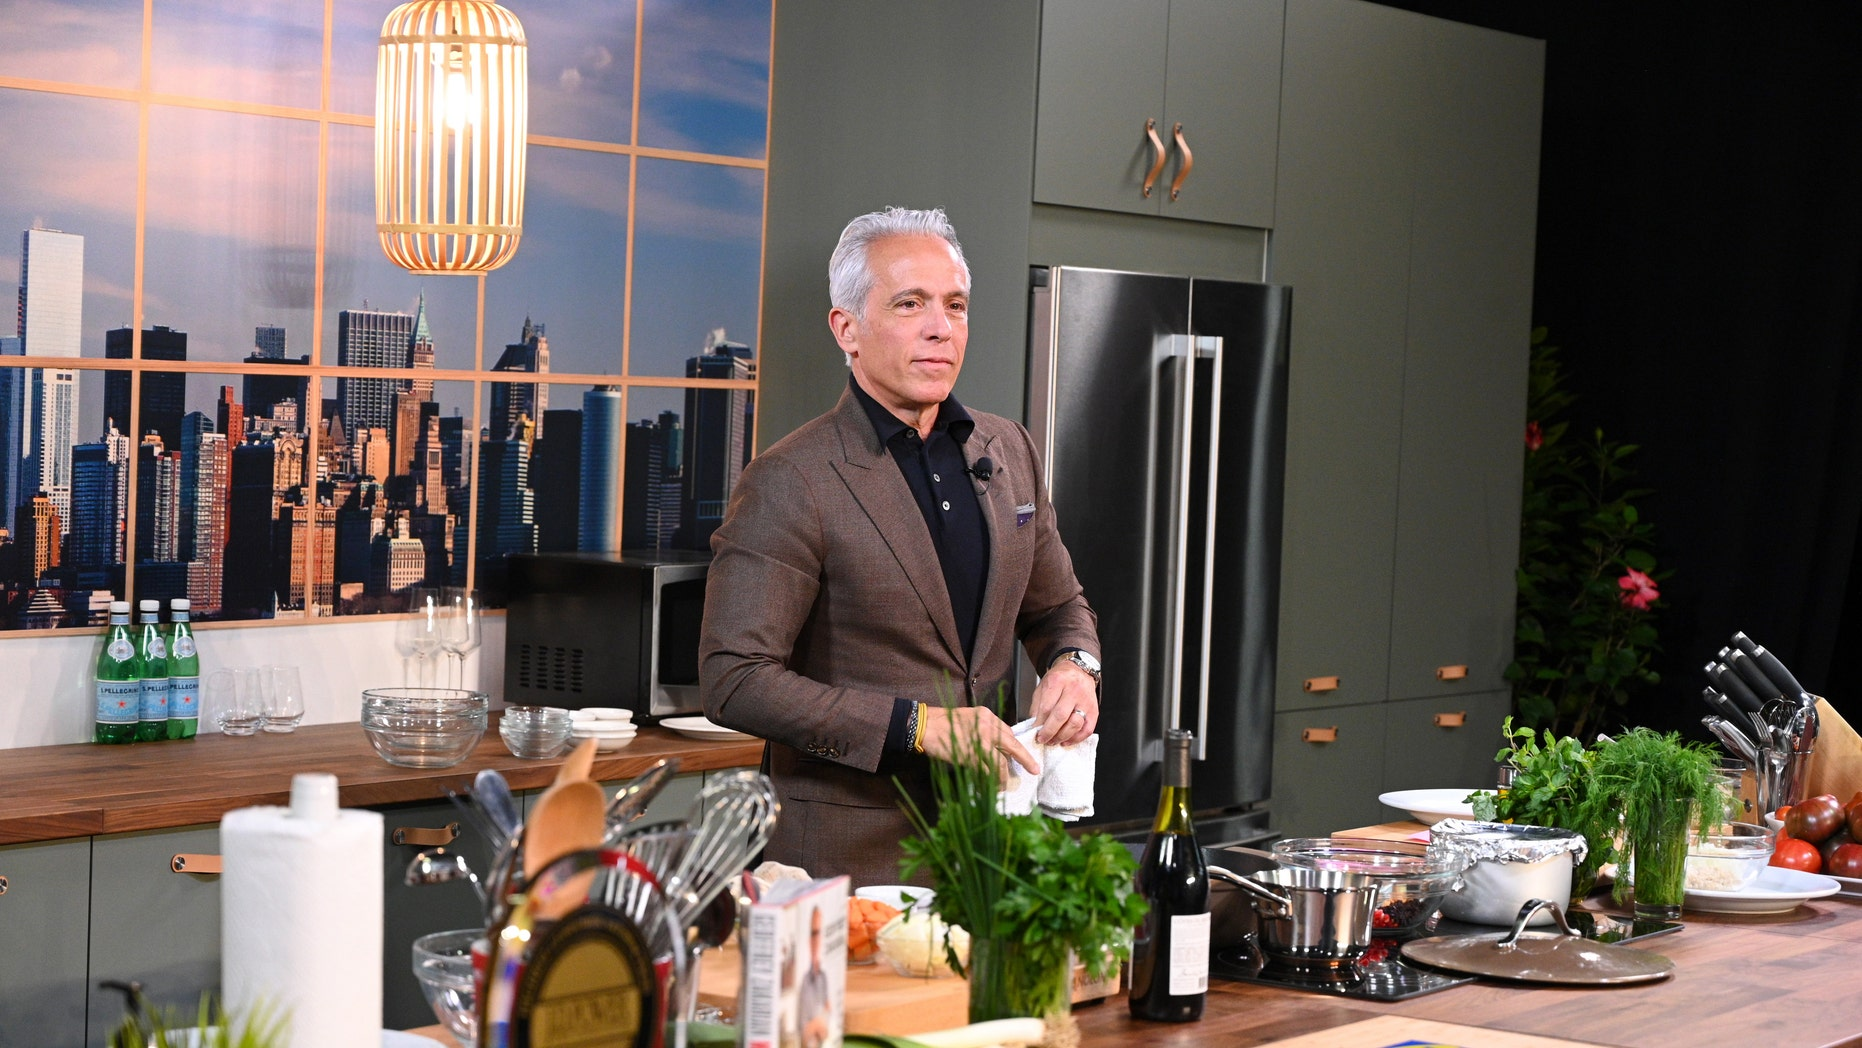 Westlake Legal Group geoffrey-zakarian National Margarita Day: Celebrity chef Geoffrey Zakarian explains what makes the perfect margarita fox-news/food-drink/recipes/meals/cocktail fox-news/food-drink/food/celebrity-chefs fox-news/food-drink/drinks/spirits fox news fnc/food-drink fnc article Alexandra Deabler 31ed1ce9-0ec8-5997-a518-b45e0224c6d9